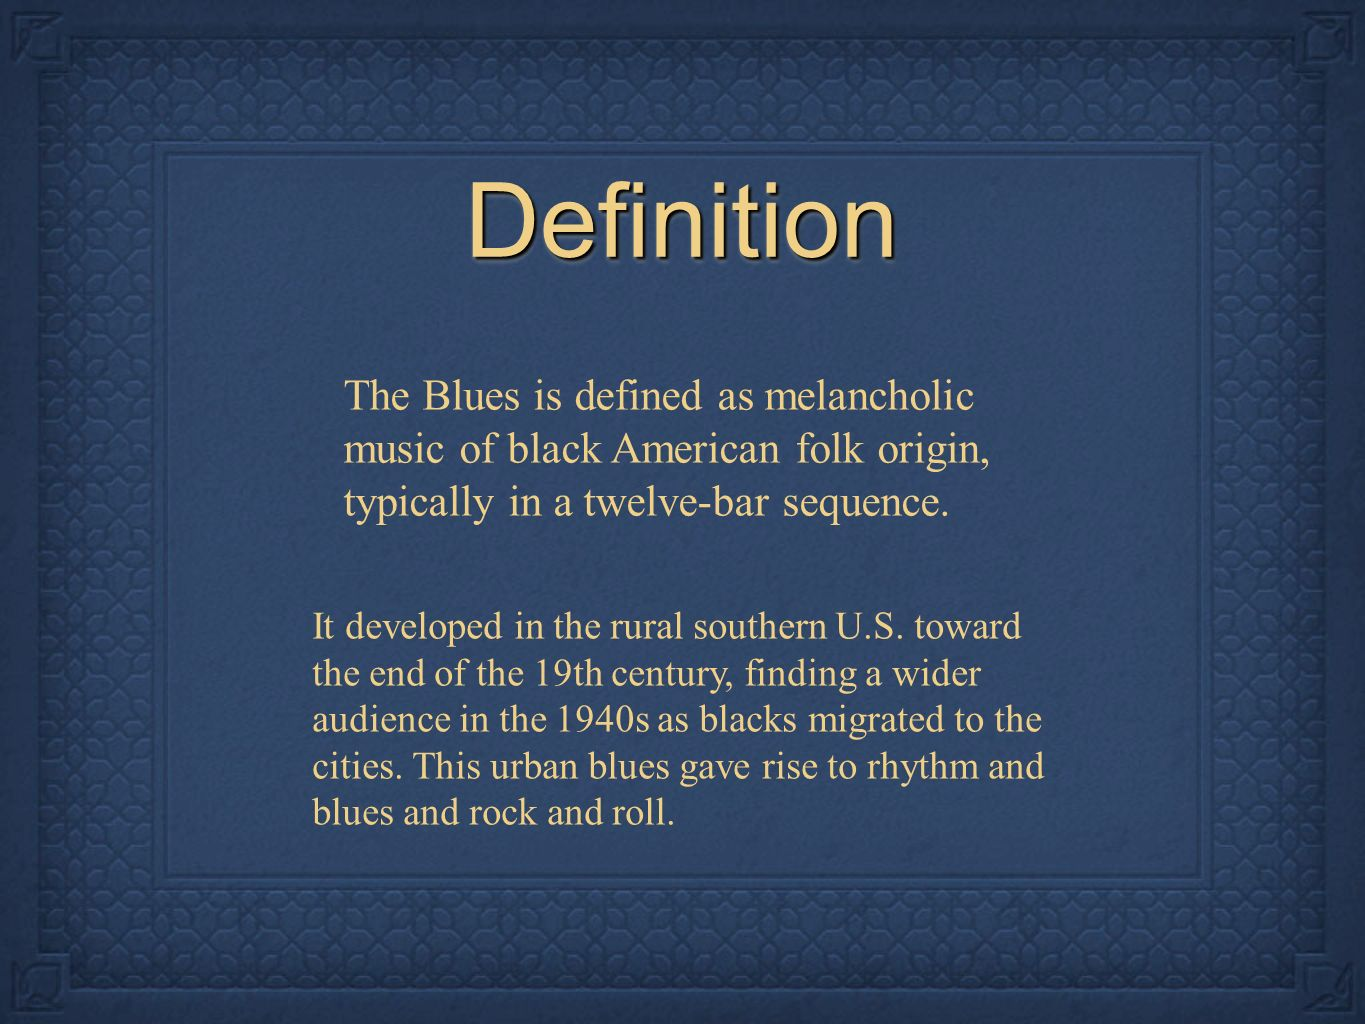 The Blues  DefinitionDefinition The Blues is defined as